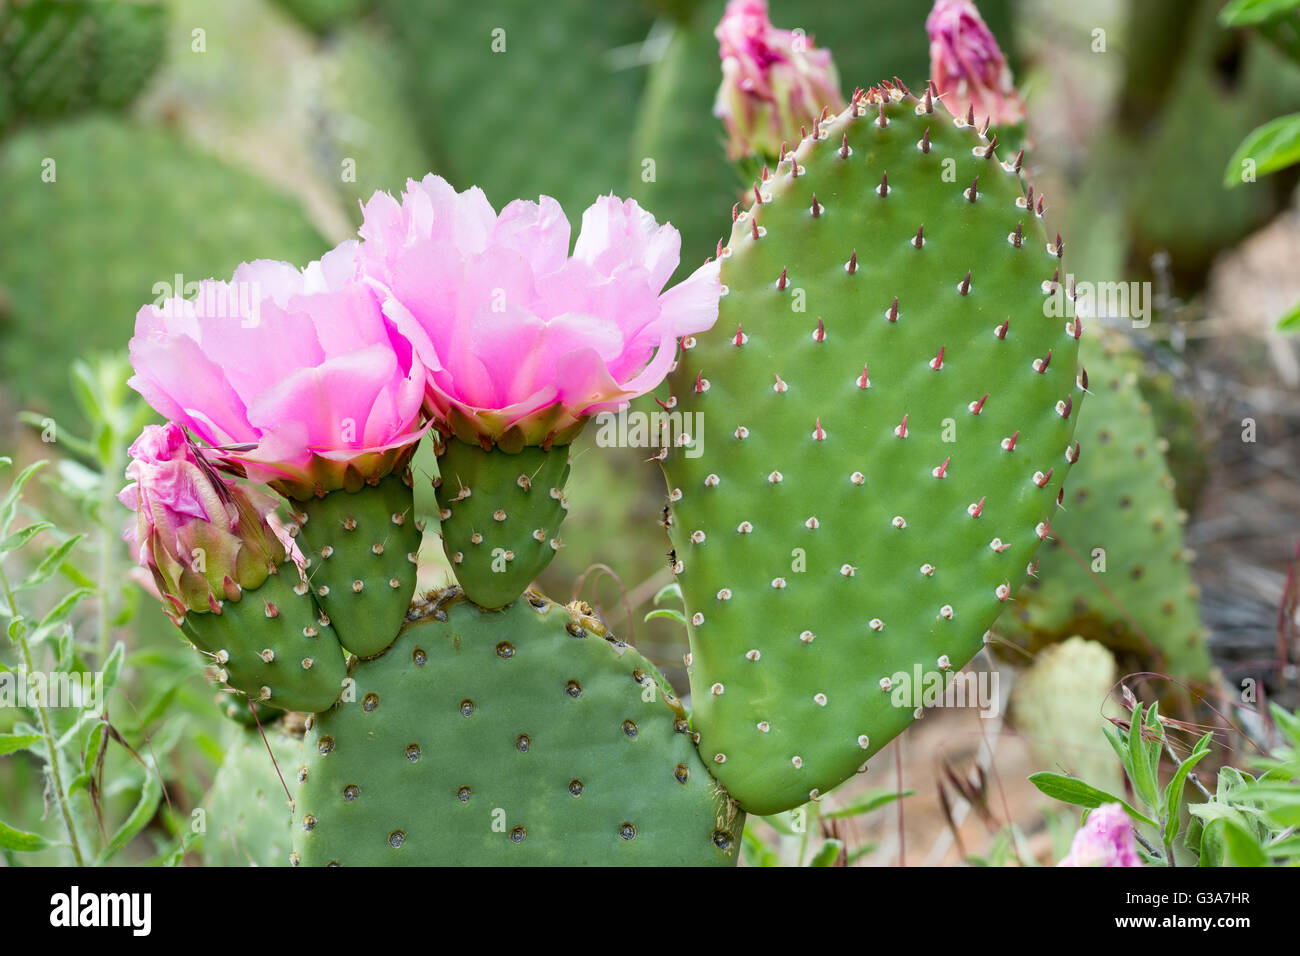 Pricklypear cactus in bloom, Zion National Park, Utah. Stock Photo